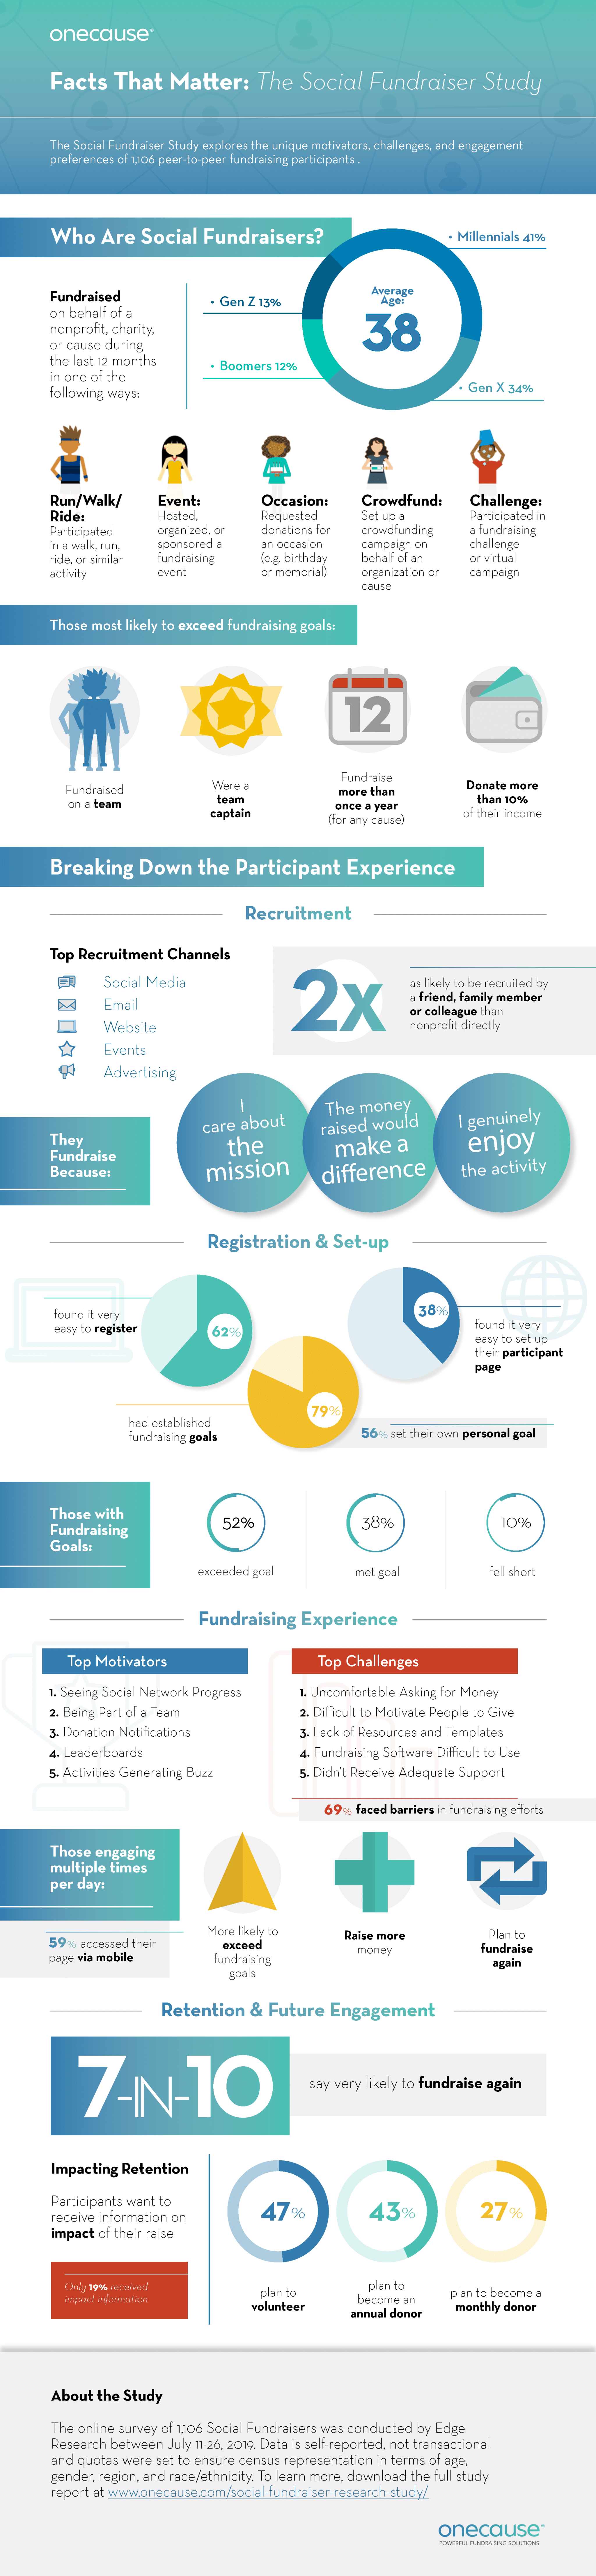 Infographic: Social Fundraiser Research Study